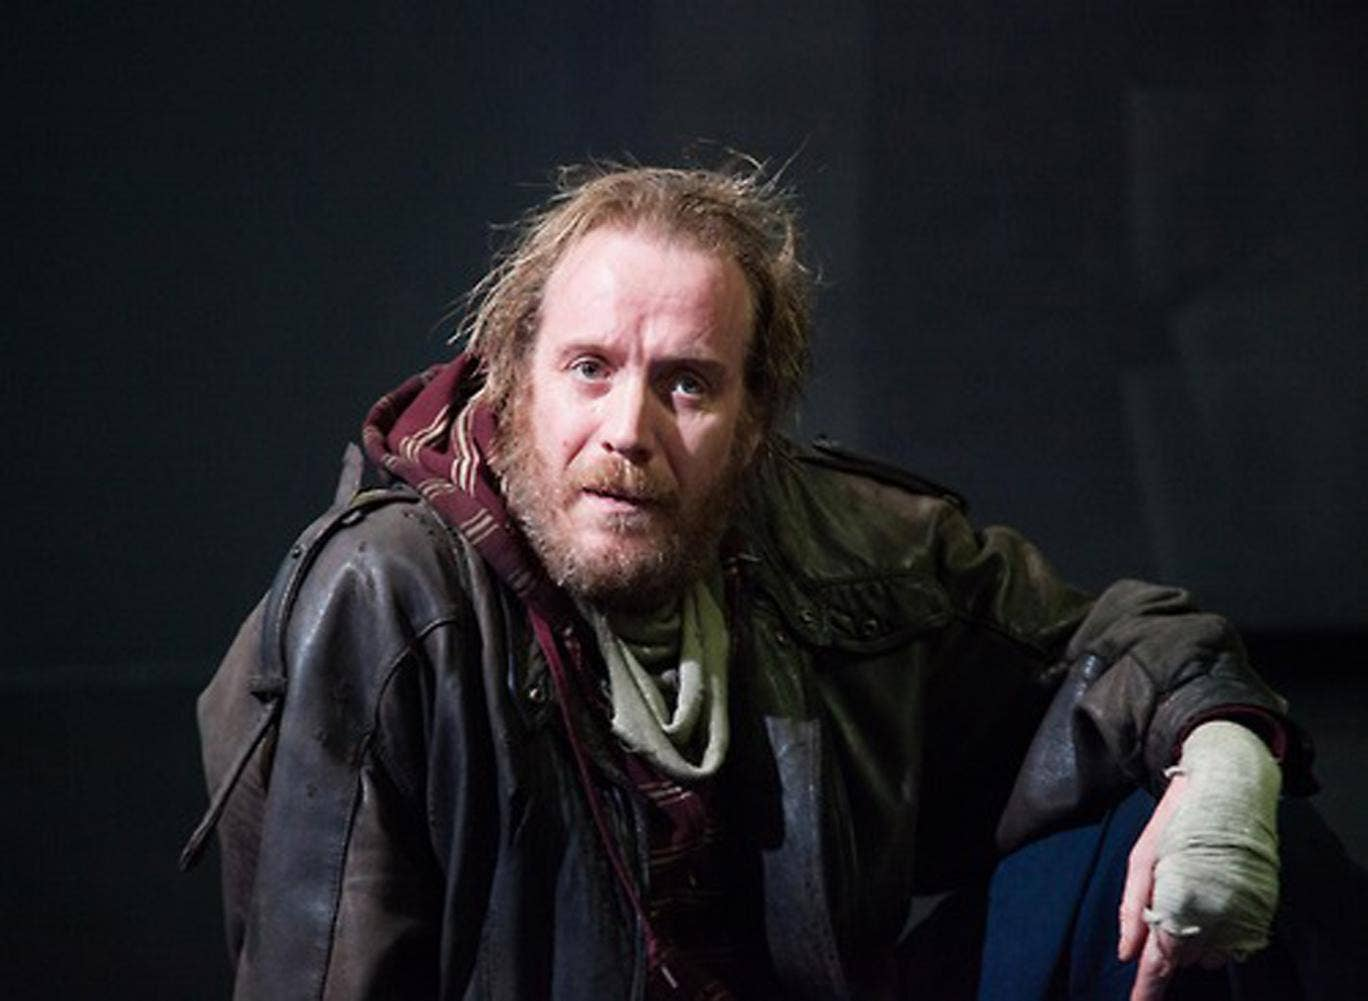 Rhys Ifans plays Danny in 'Protest Song' by Tim Price at the National's Shed theatre